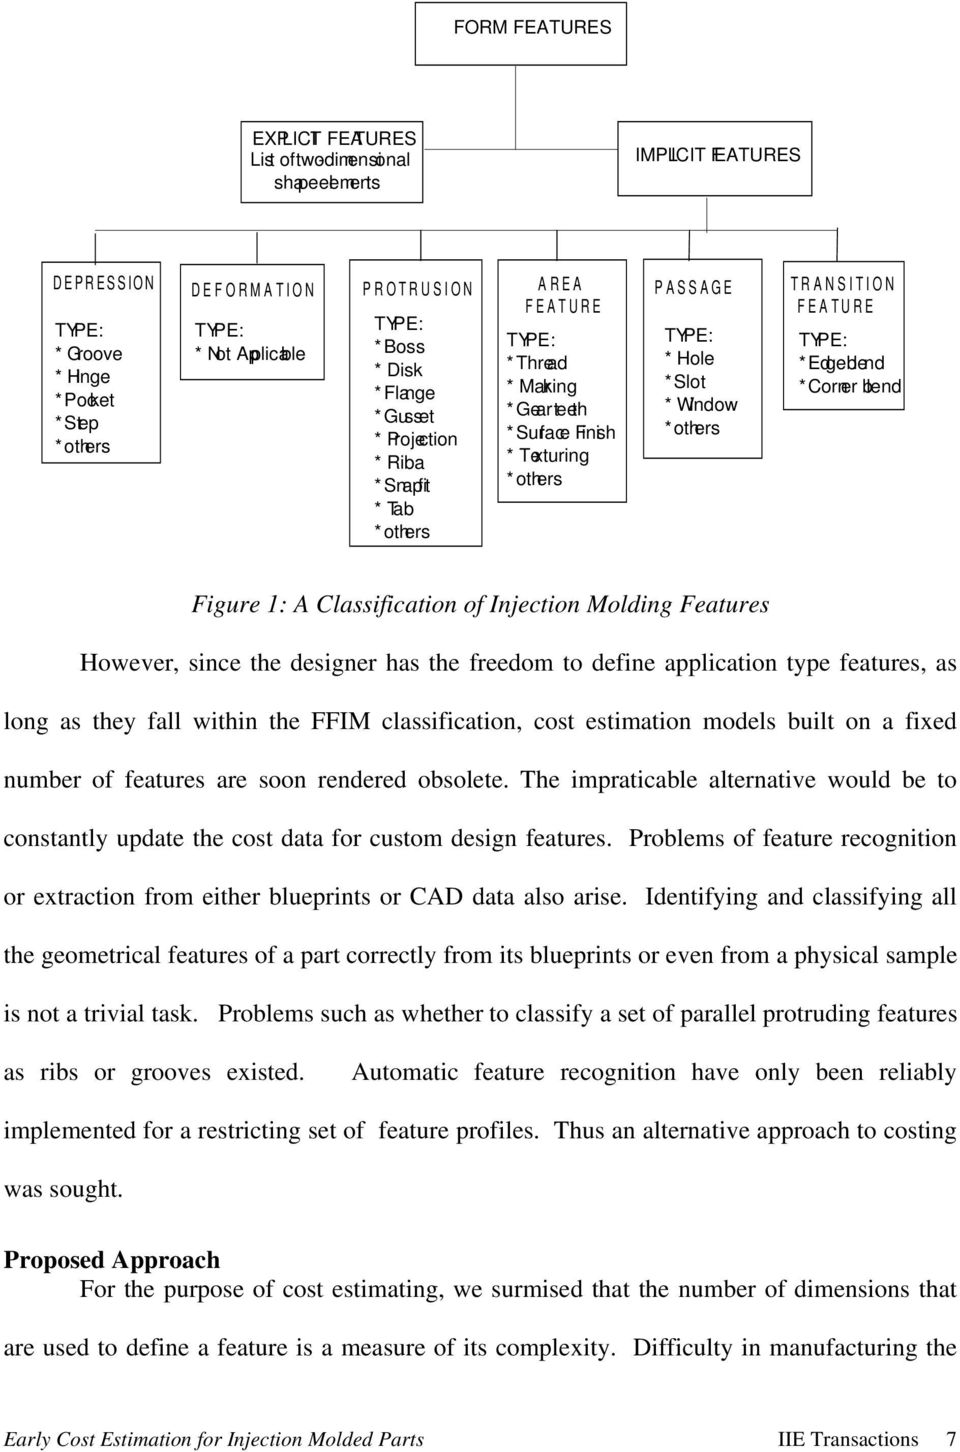 EARLY COST ESTIMATION FOR INJECTION MOLDED PARTS - PDF